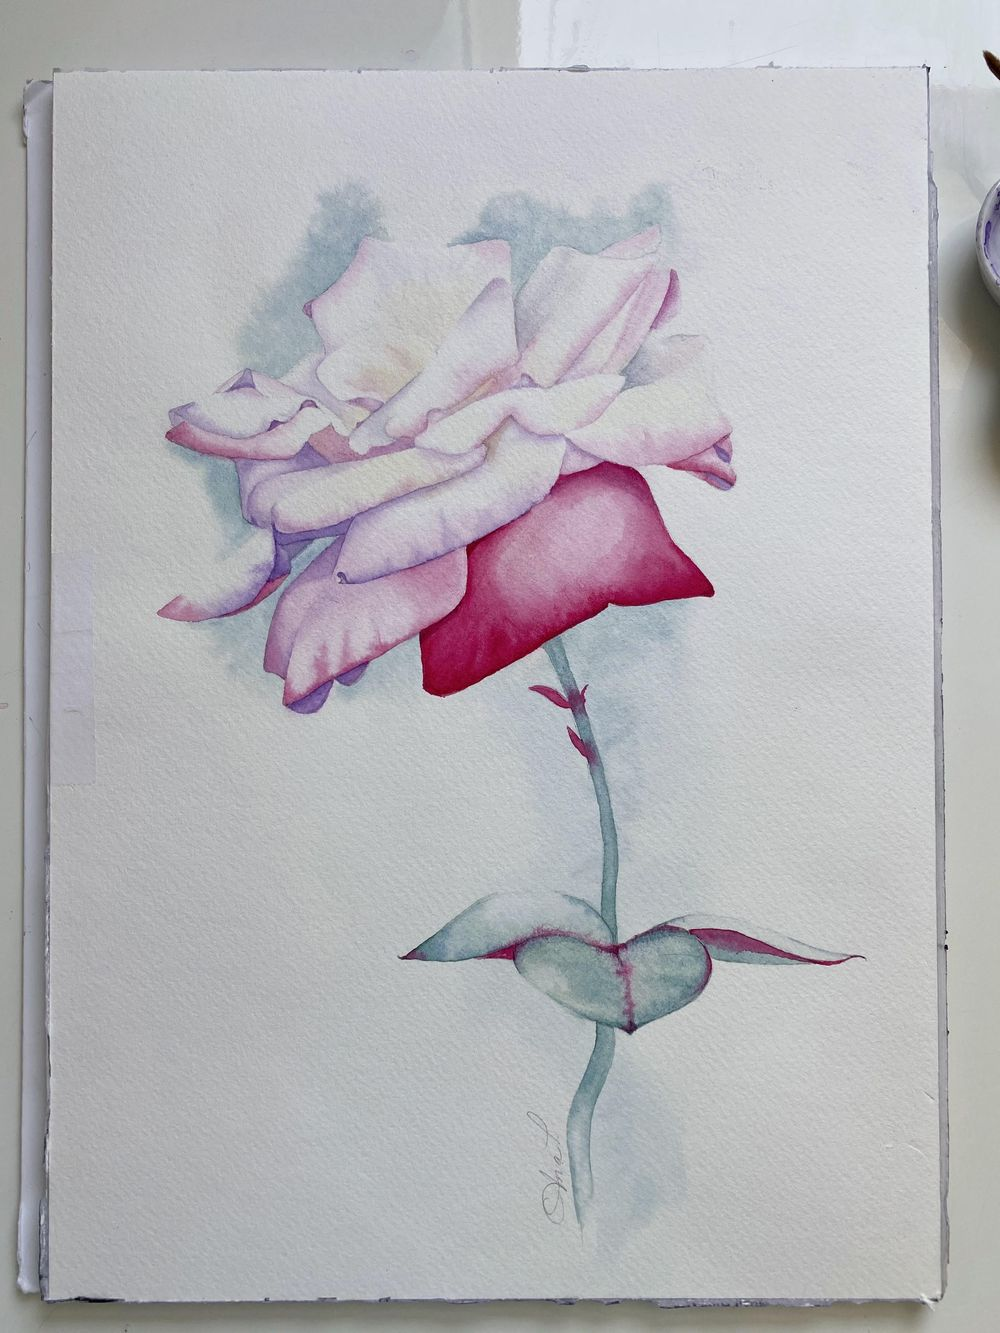 Watercolor Rose Ana T - image 1 - student project